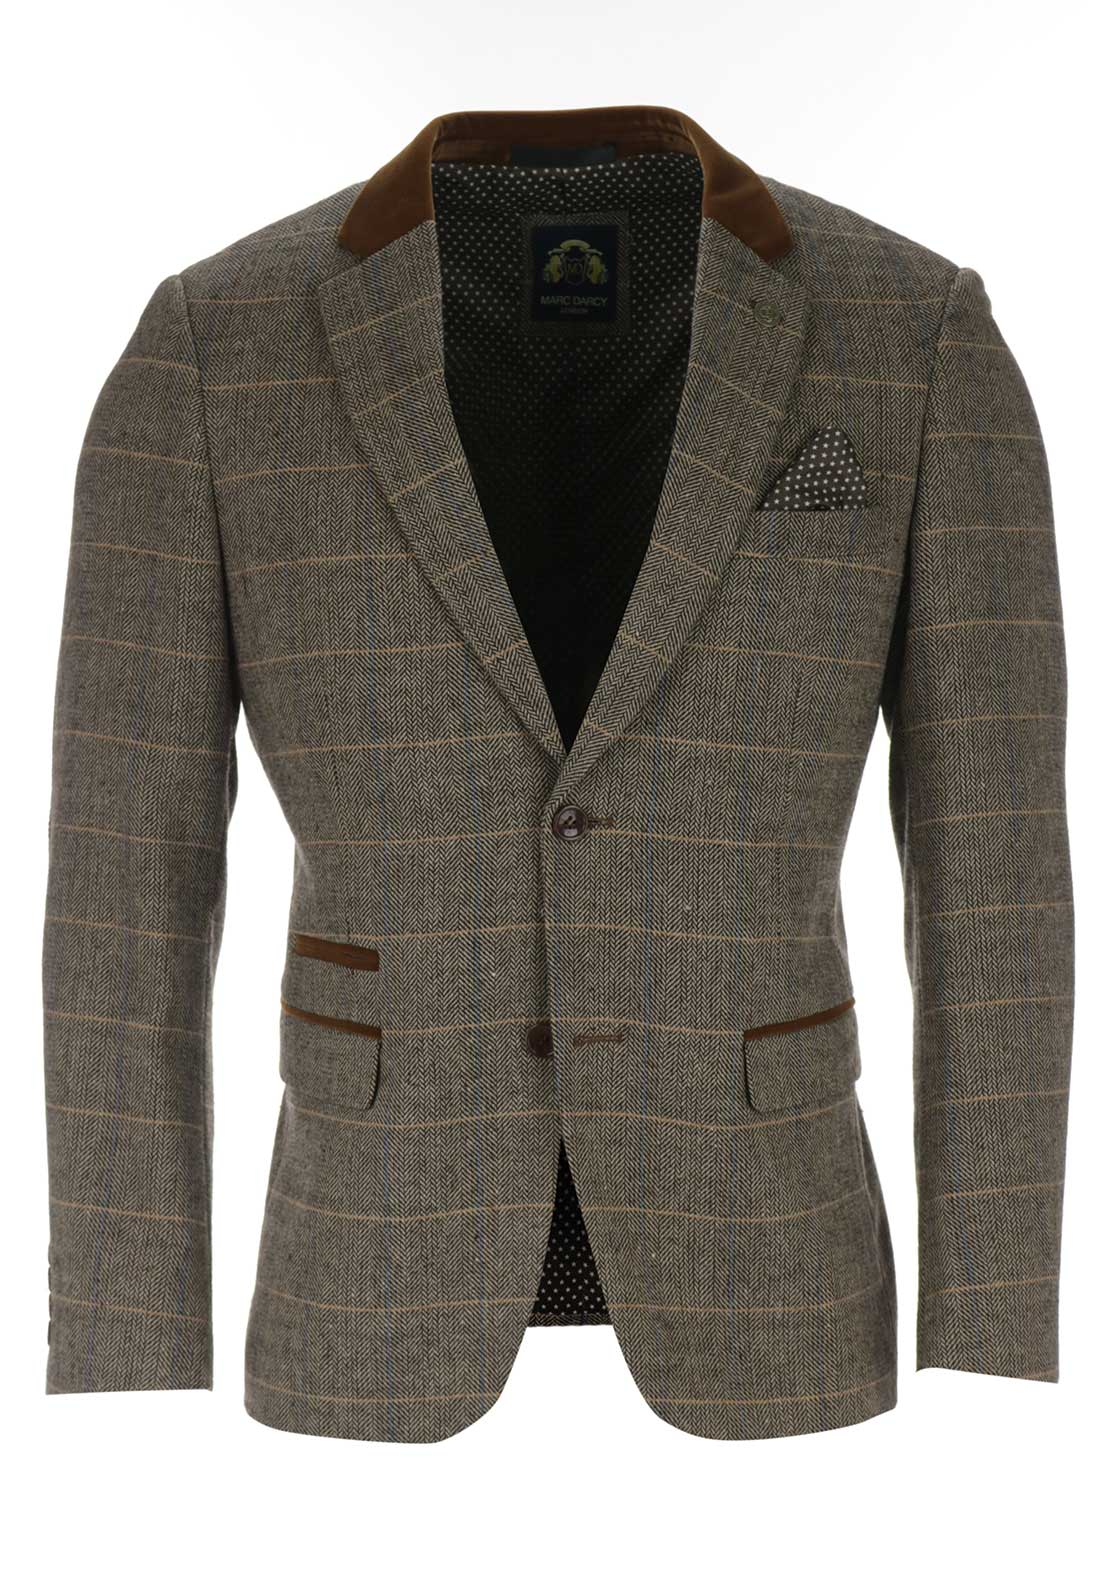 Marc Darcy Mens Herringbone Sports Jacket, Tan